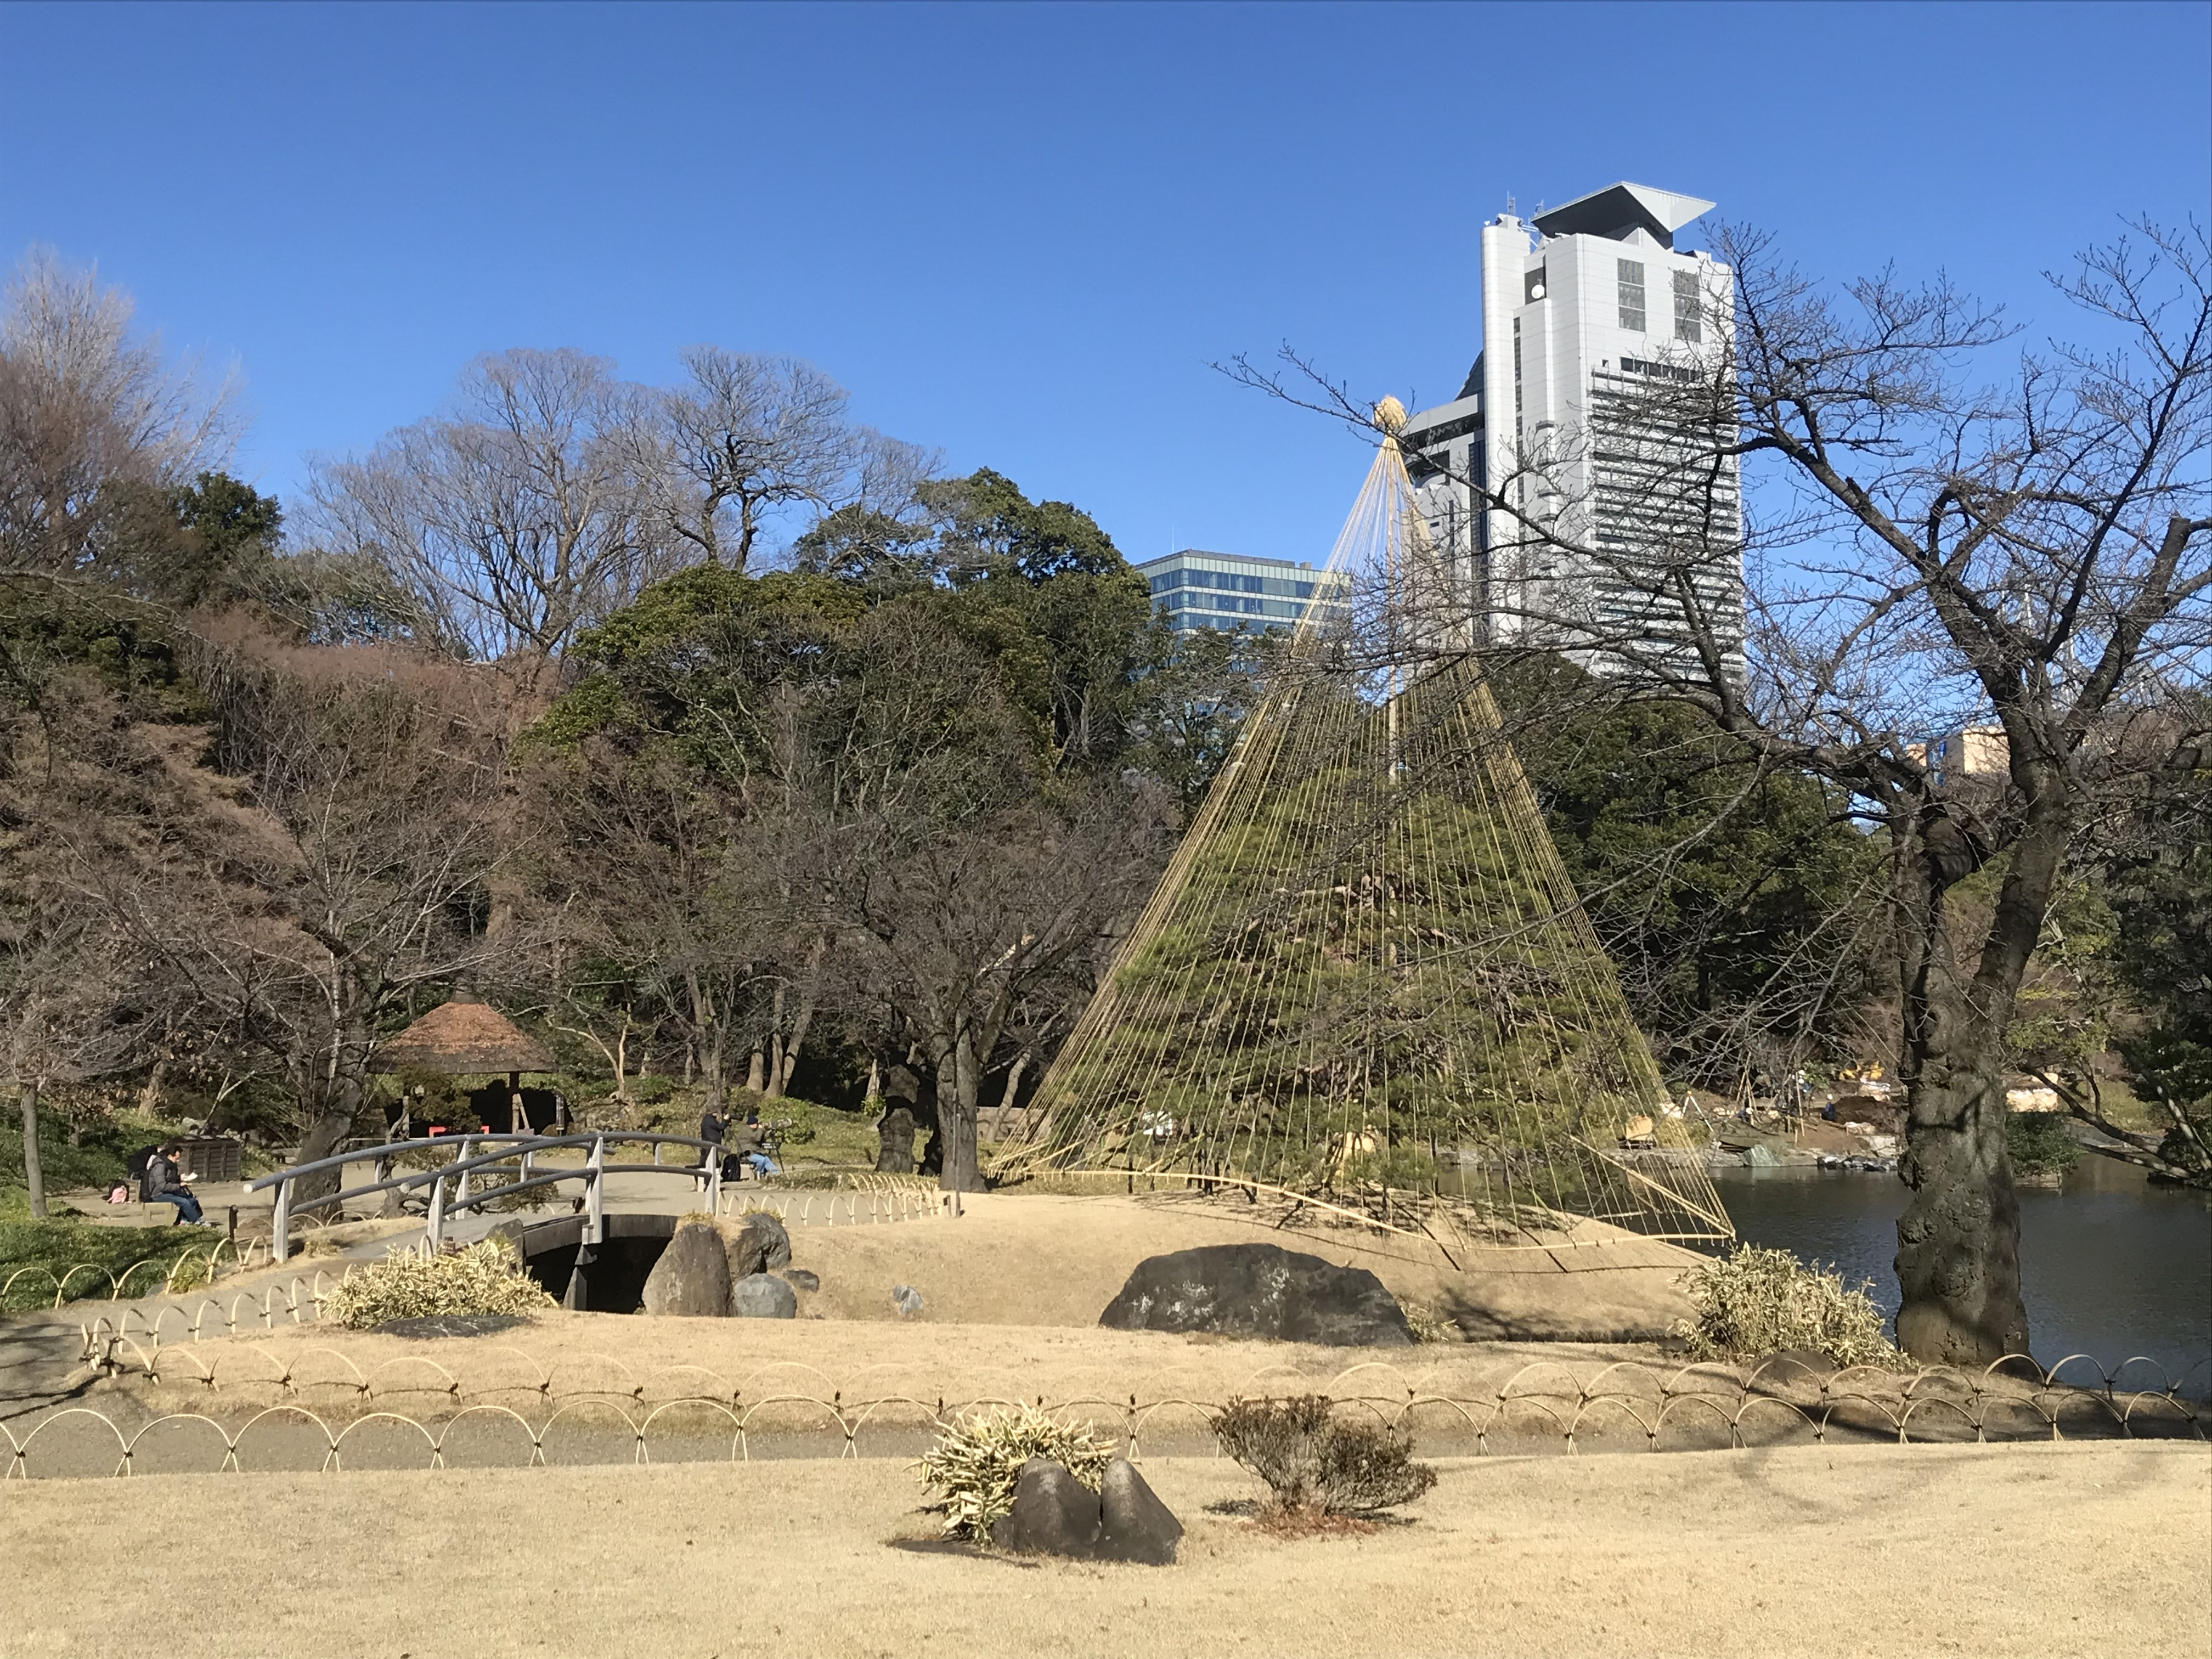 A pine tree decorated for winter scenery in Koishikawa Korakuen